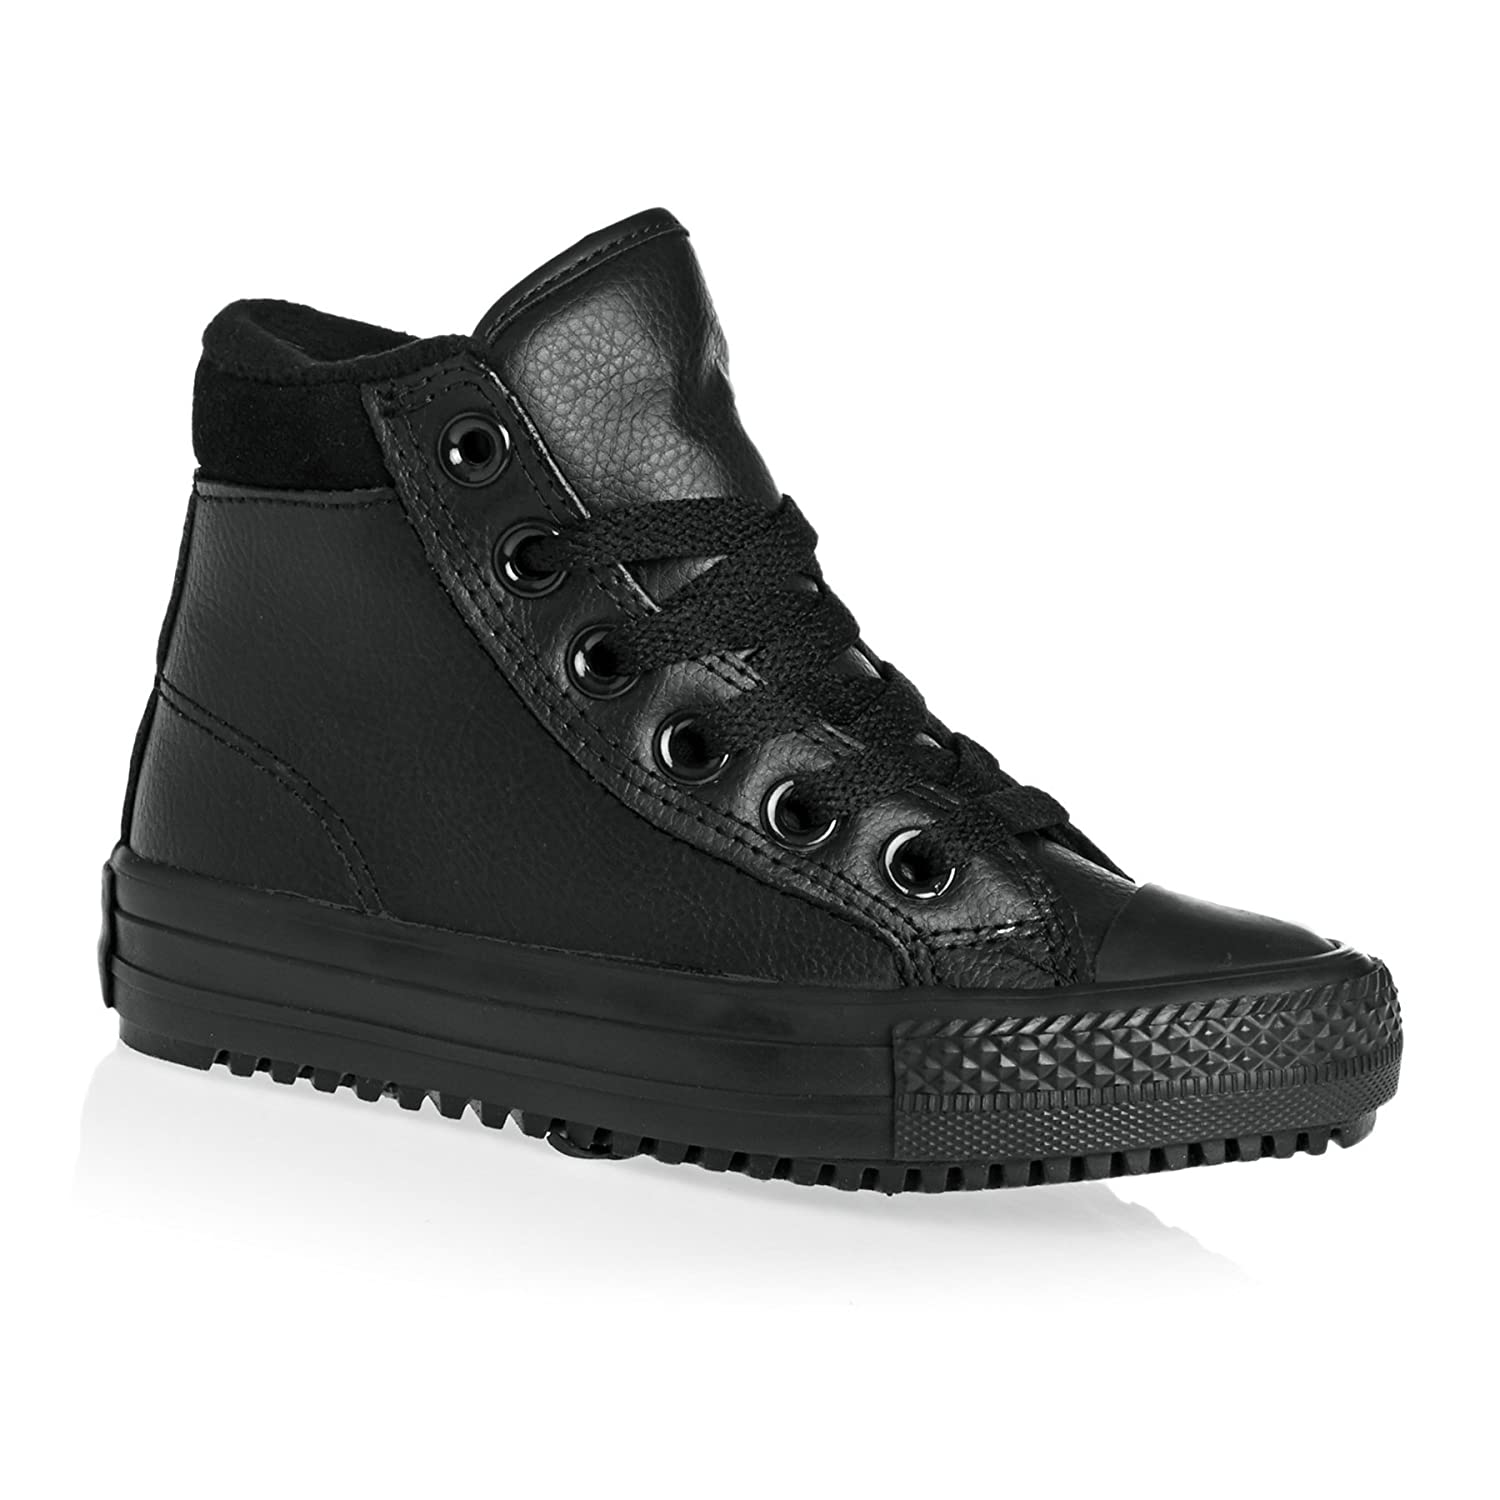 Converse Chuck Taylor All Star Weatherized Junior Black